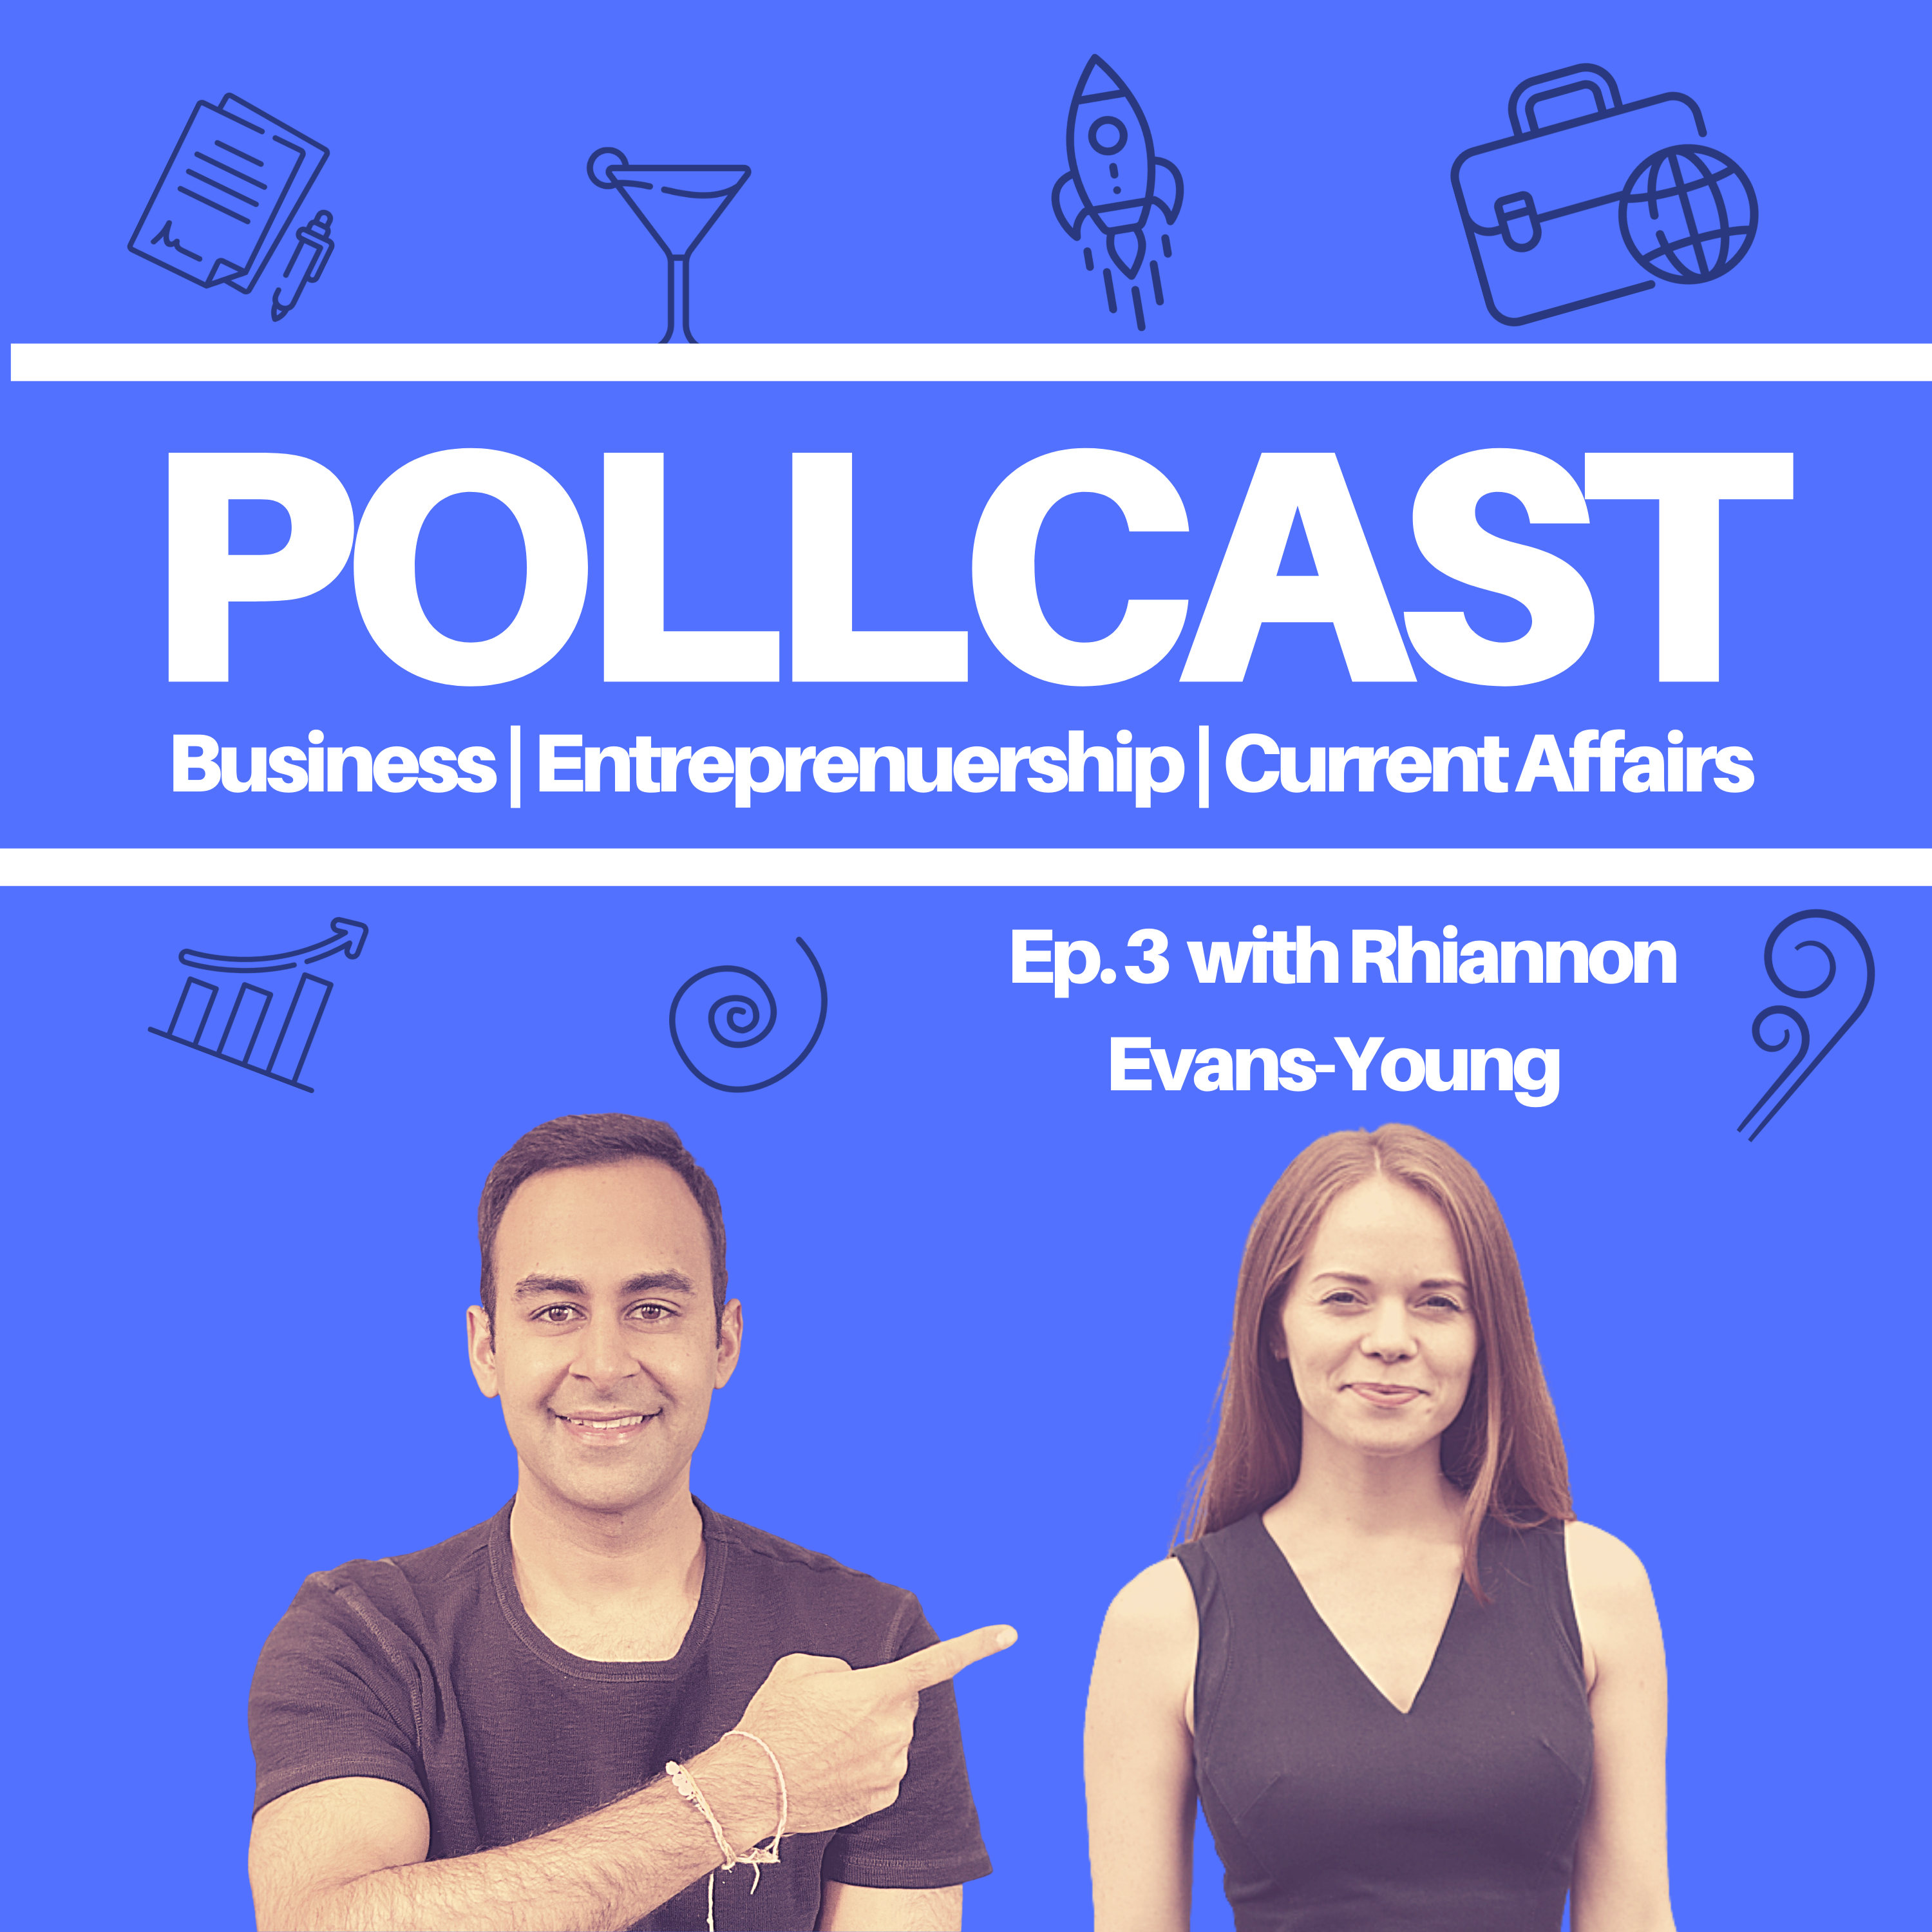 Rhiannon Evans-Young - Building a brand as a start-up